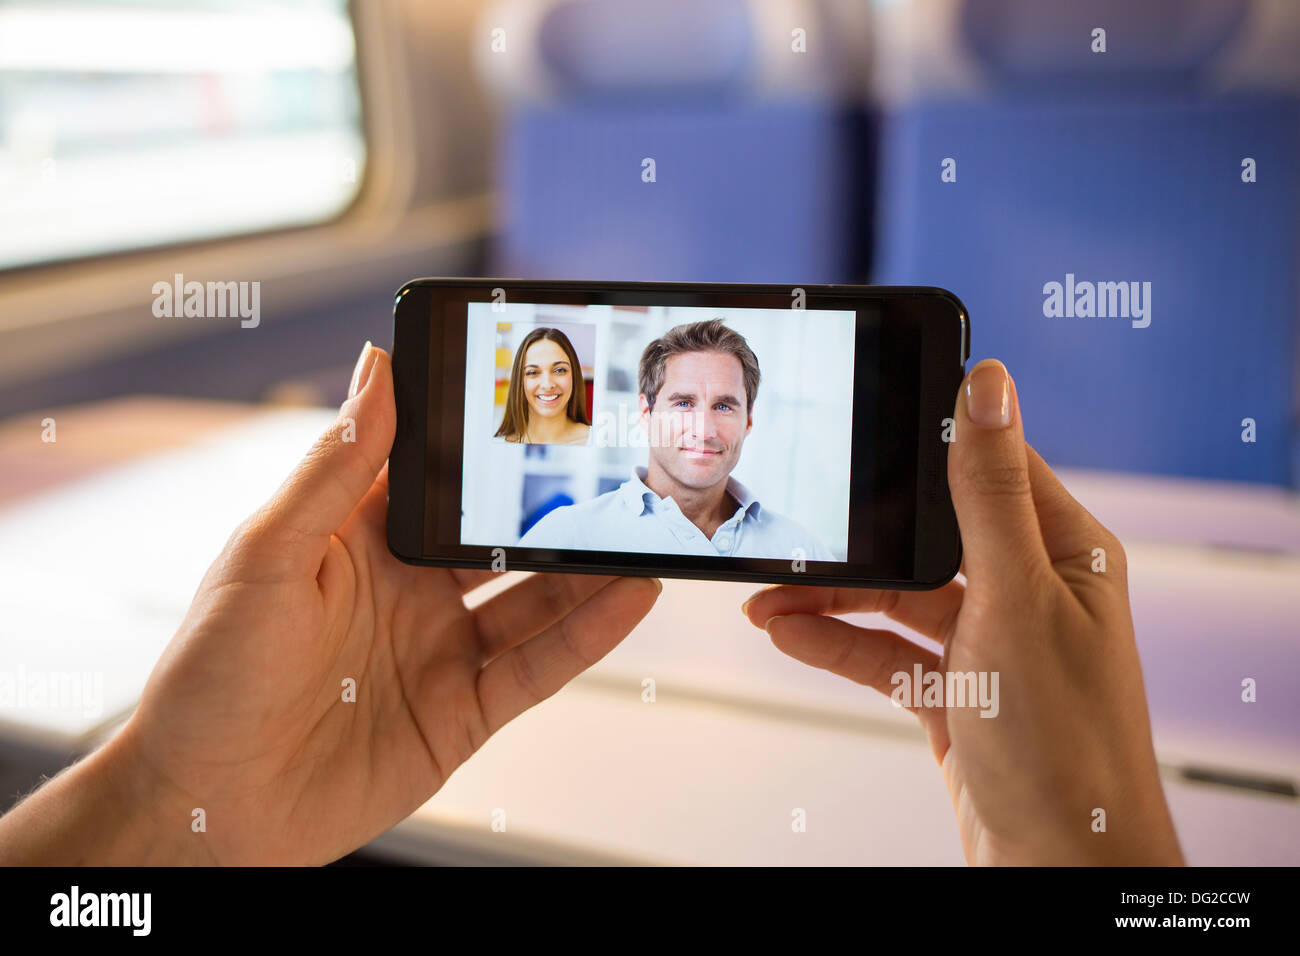 Woman in train chatting on her mobile phone. Video conference - Stock Image